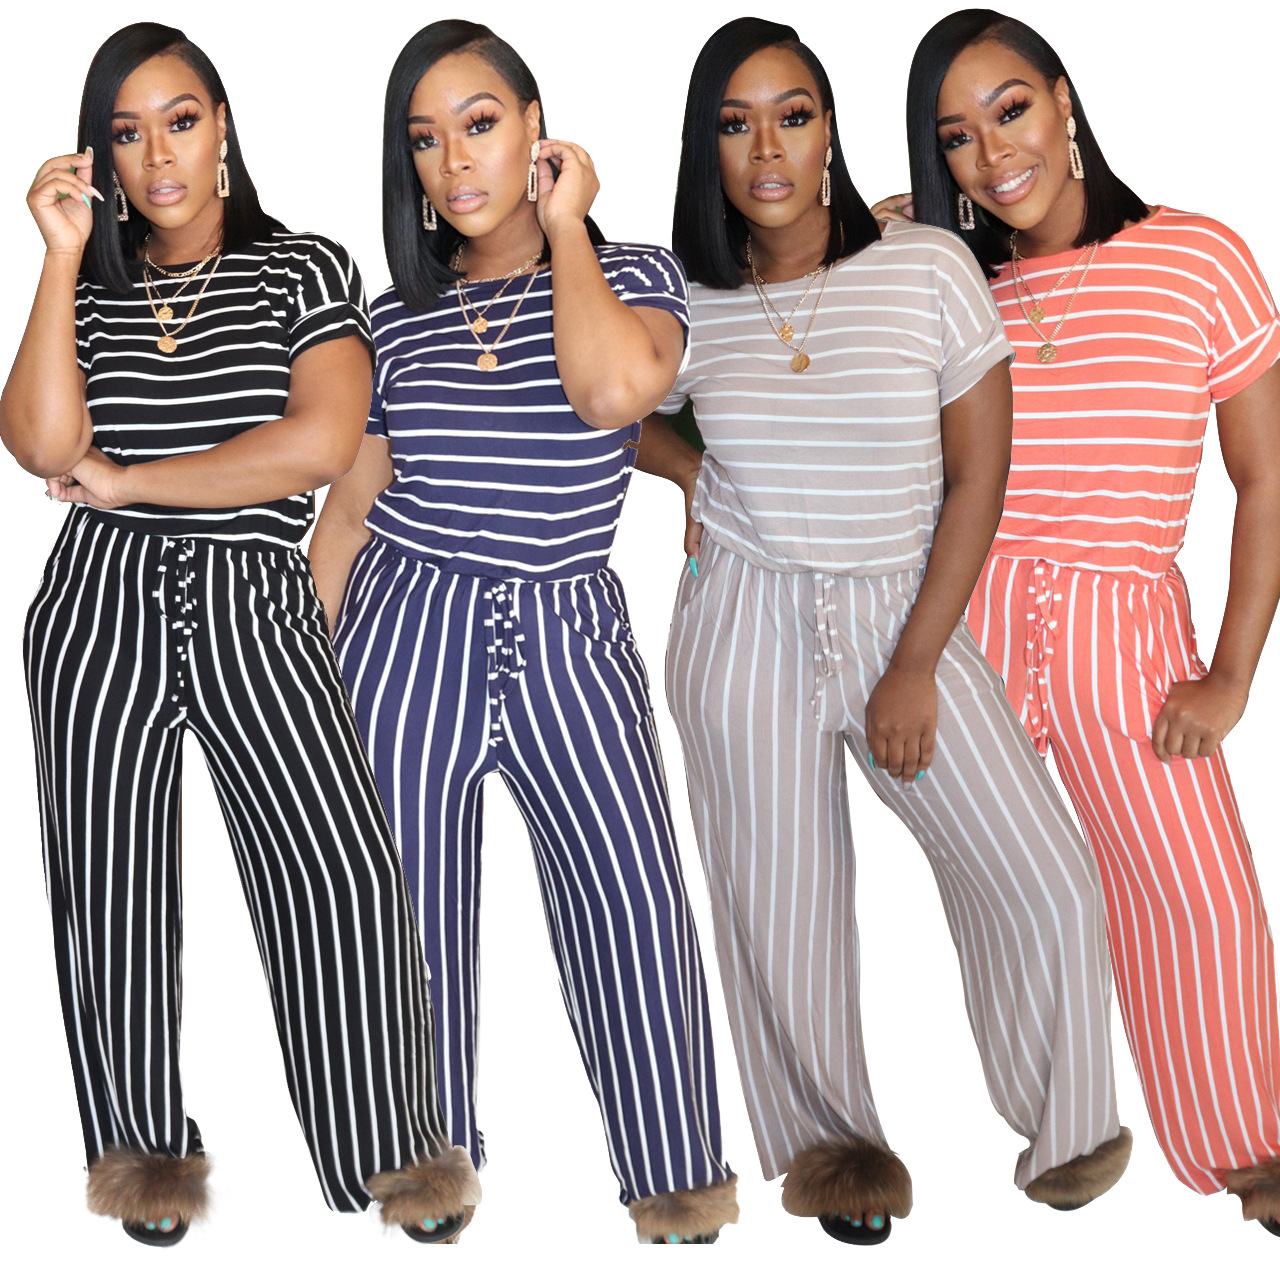 H166f12237c554f9599521048b34916ccW - Fashion Women Stripes Jumpsuits Summer New Arrival Short Sleeves Crew Neck Women Casual Rompers Loose Daily Wear Outfits